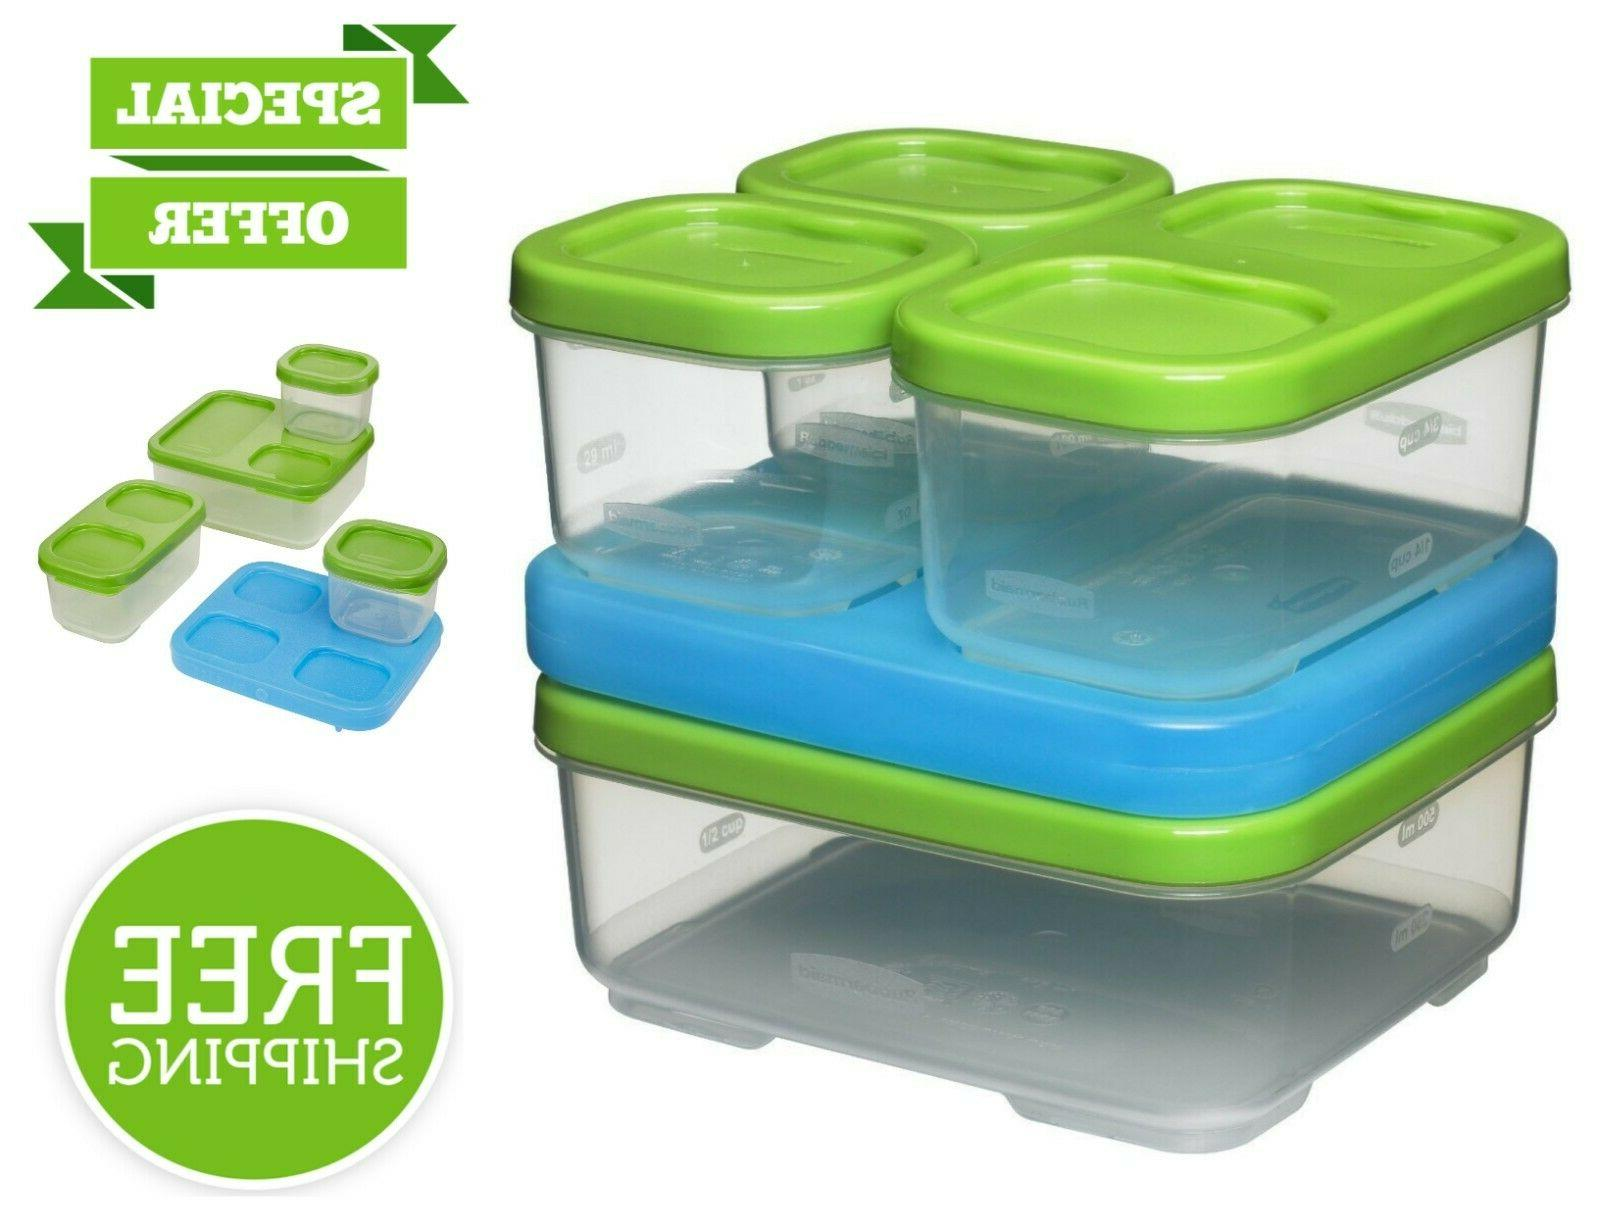 Rubbermaid LunchBlox Sandwich Kit Durable Lunch Box Food Con